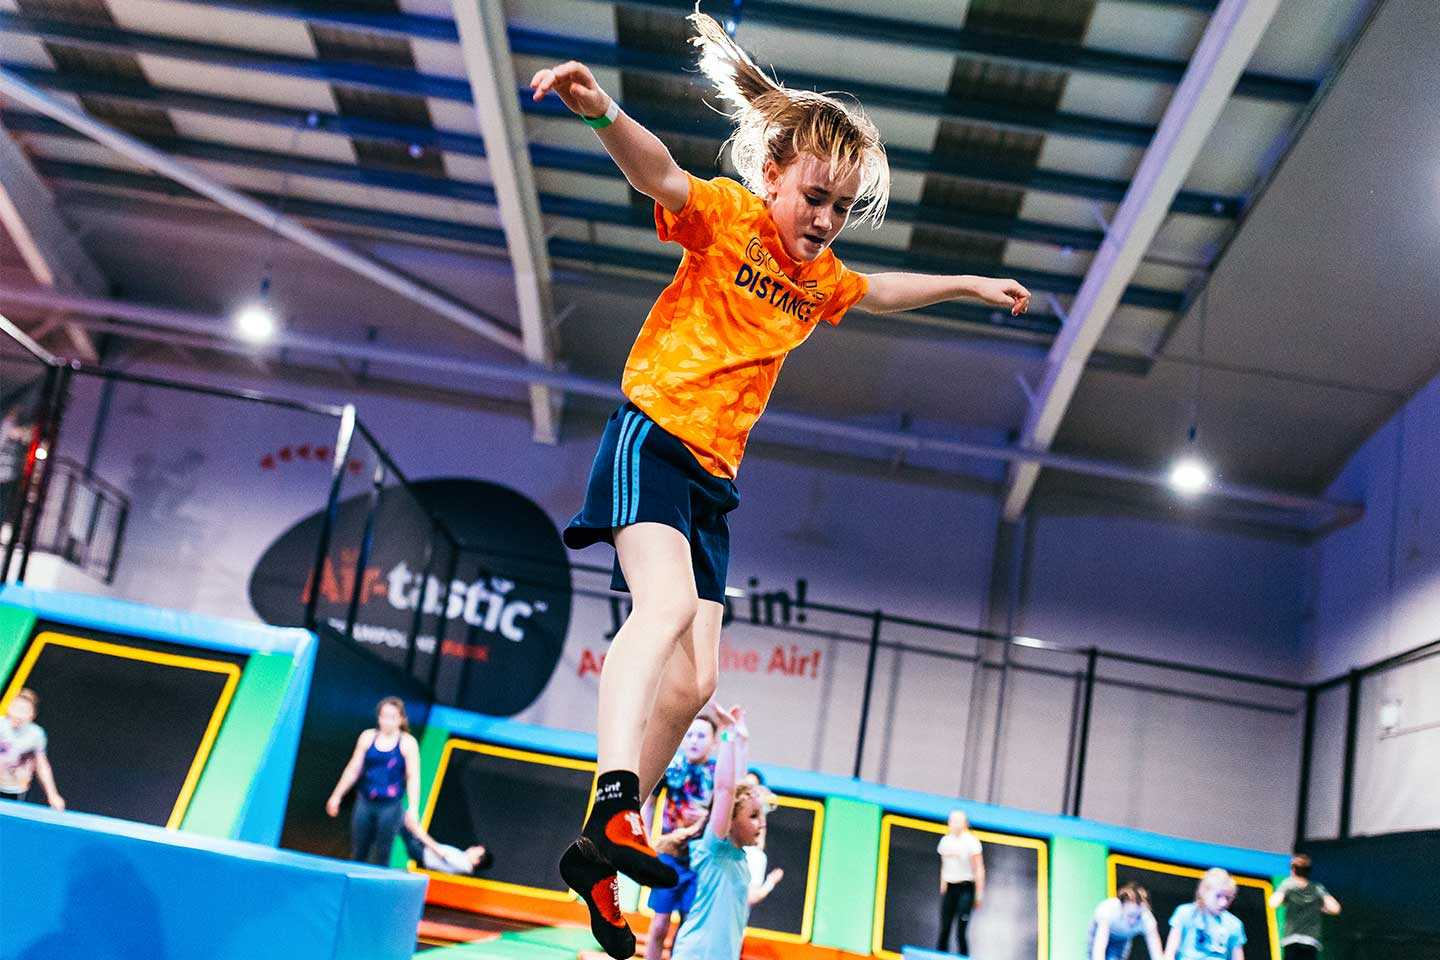 Girl Bouncing high in the air at Airtastic Trampoline Park